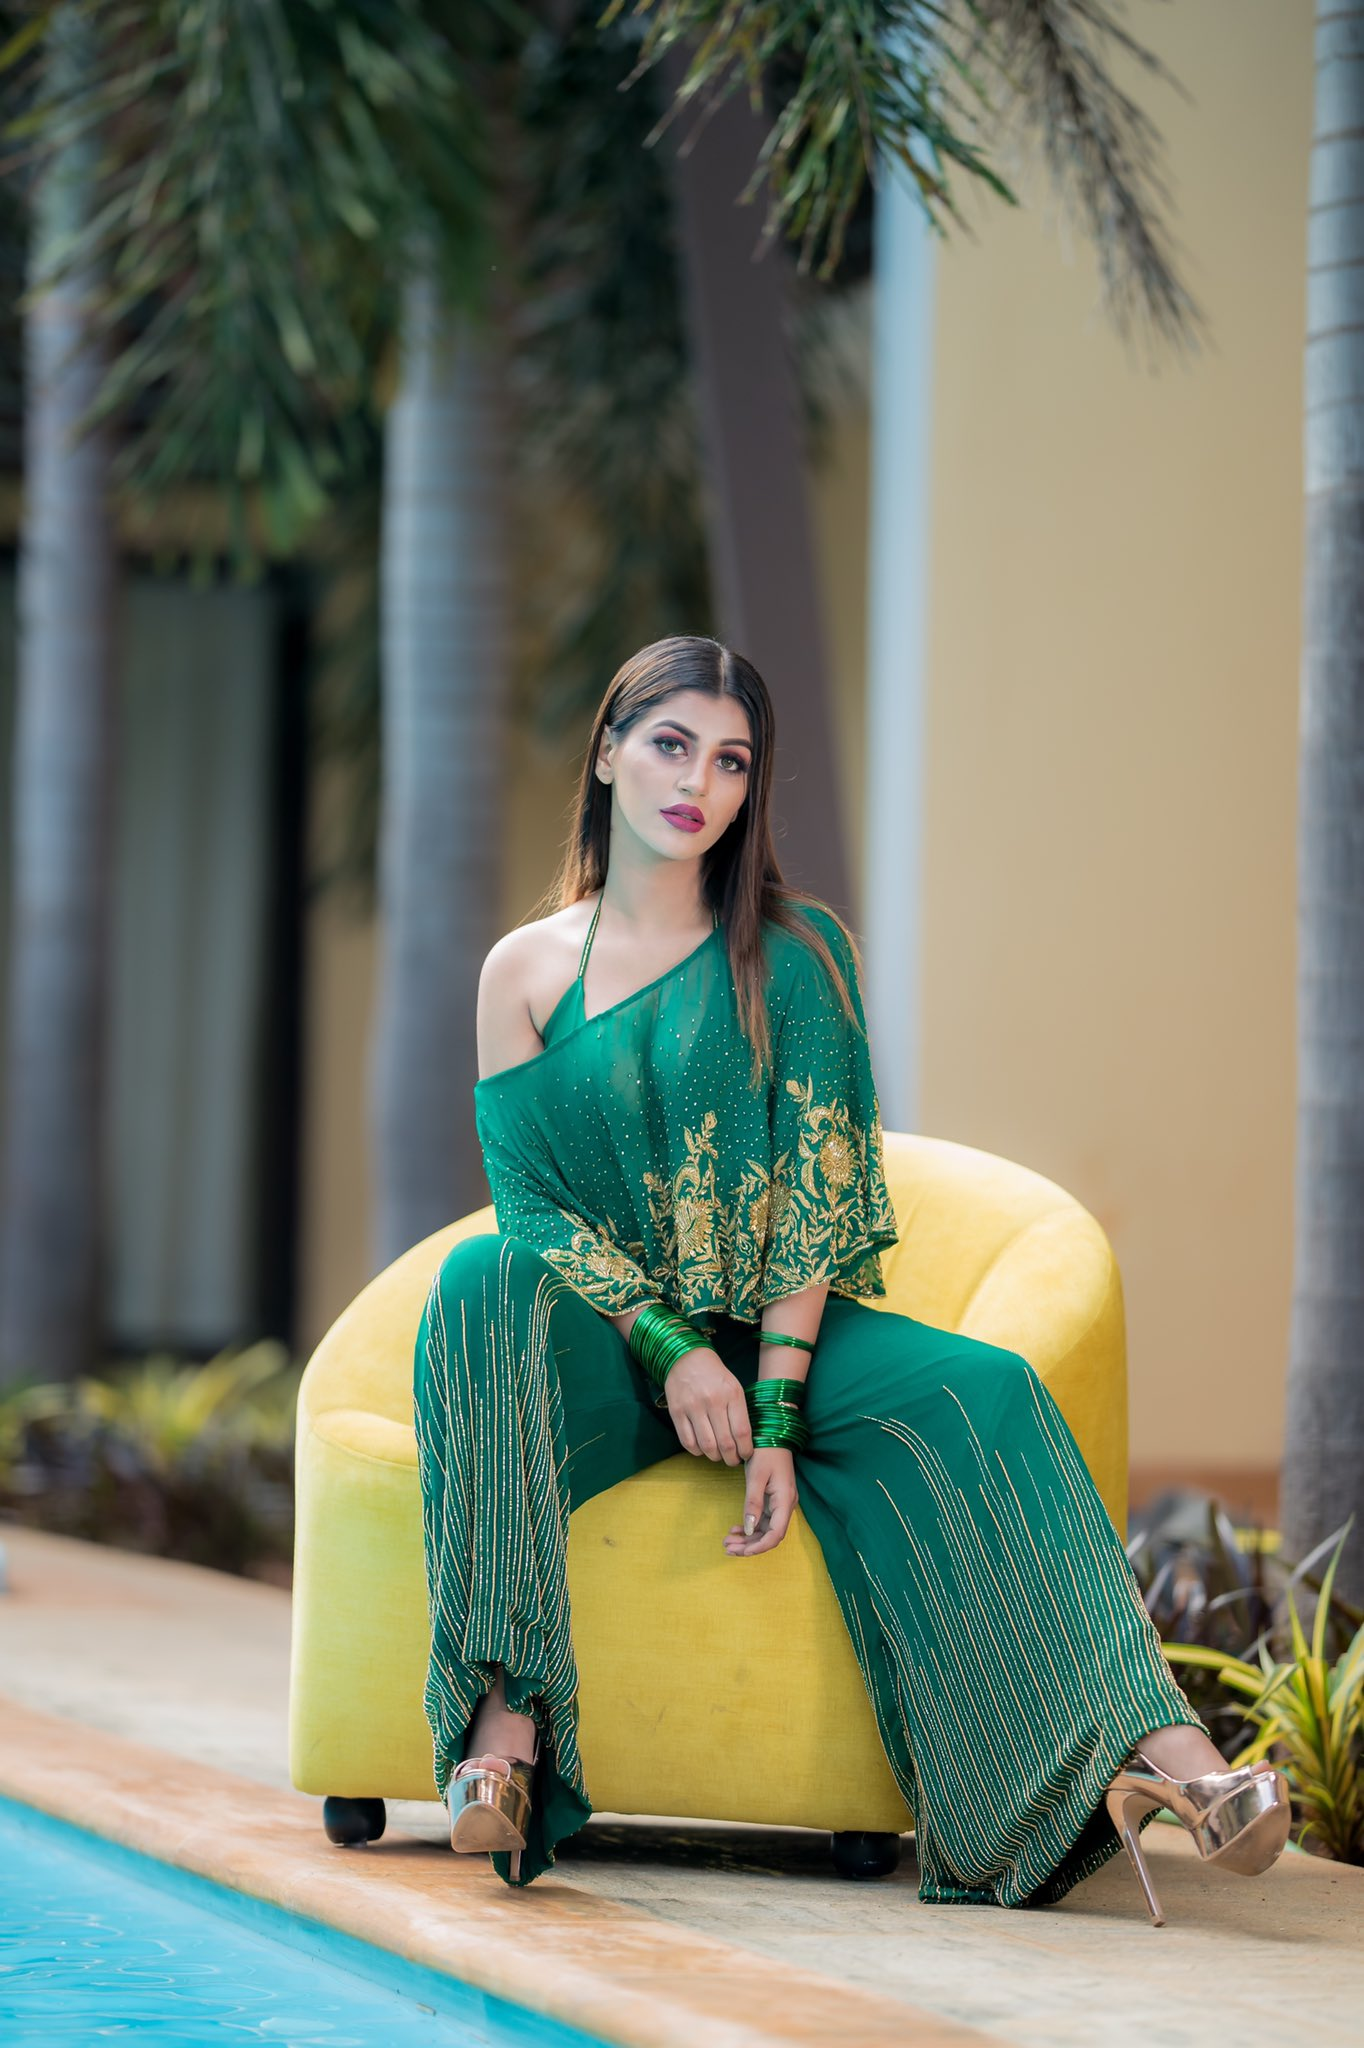 Latest photos of Big Boss Actress Yashika Aannand